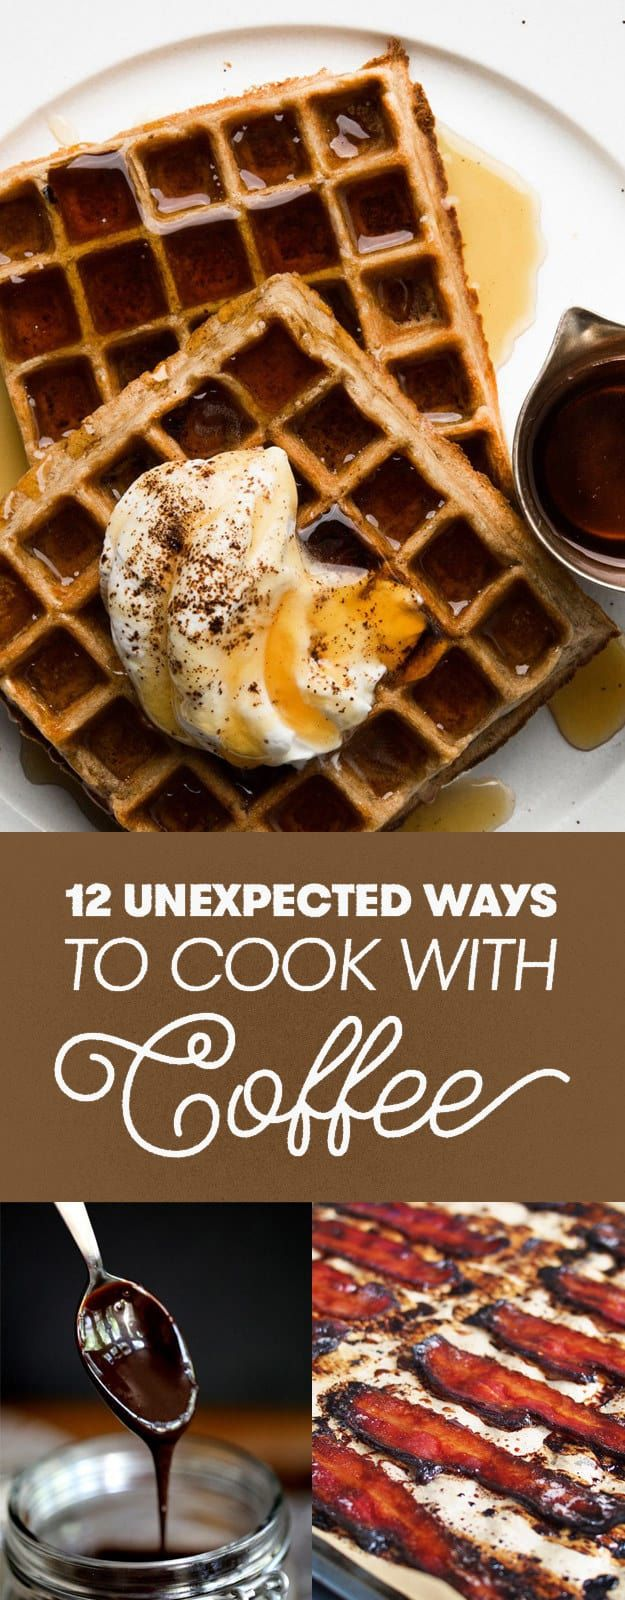 12 Ways To Cook With Coffee That You Probably Haven't Tried Yet